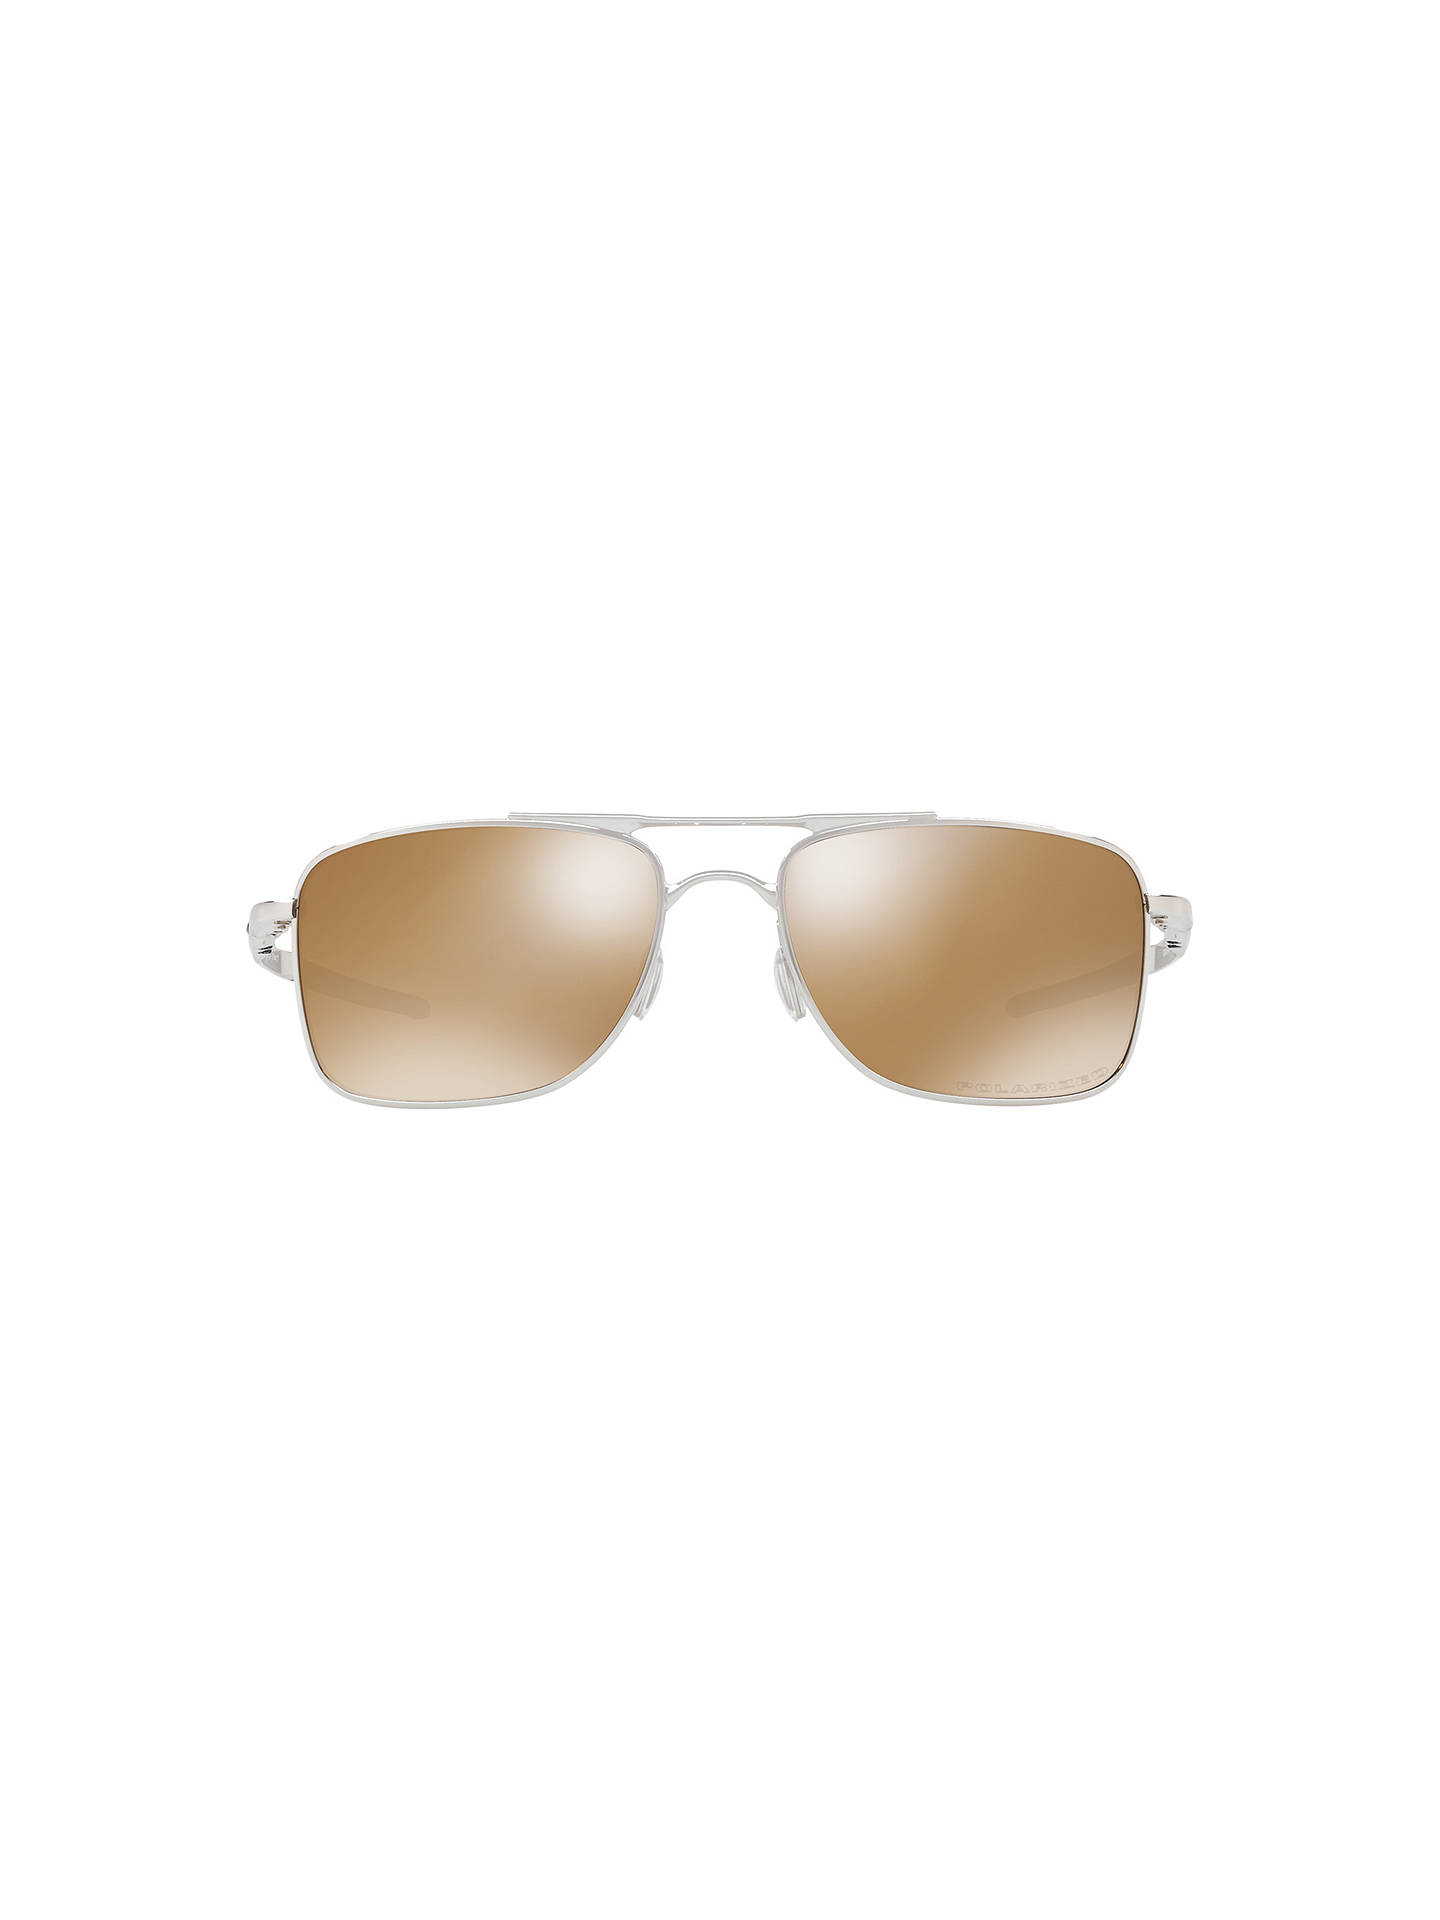 1d6c89f57 Buy Oakley OO4124 Gauge Polarised Rectangular Sunglasses, Silver/Mirror  Brown Online at johnlewis.